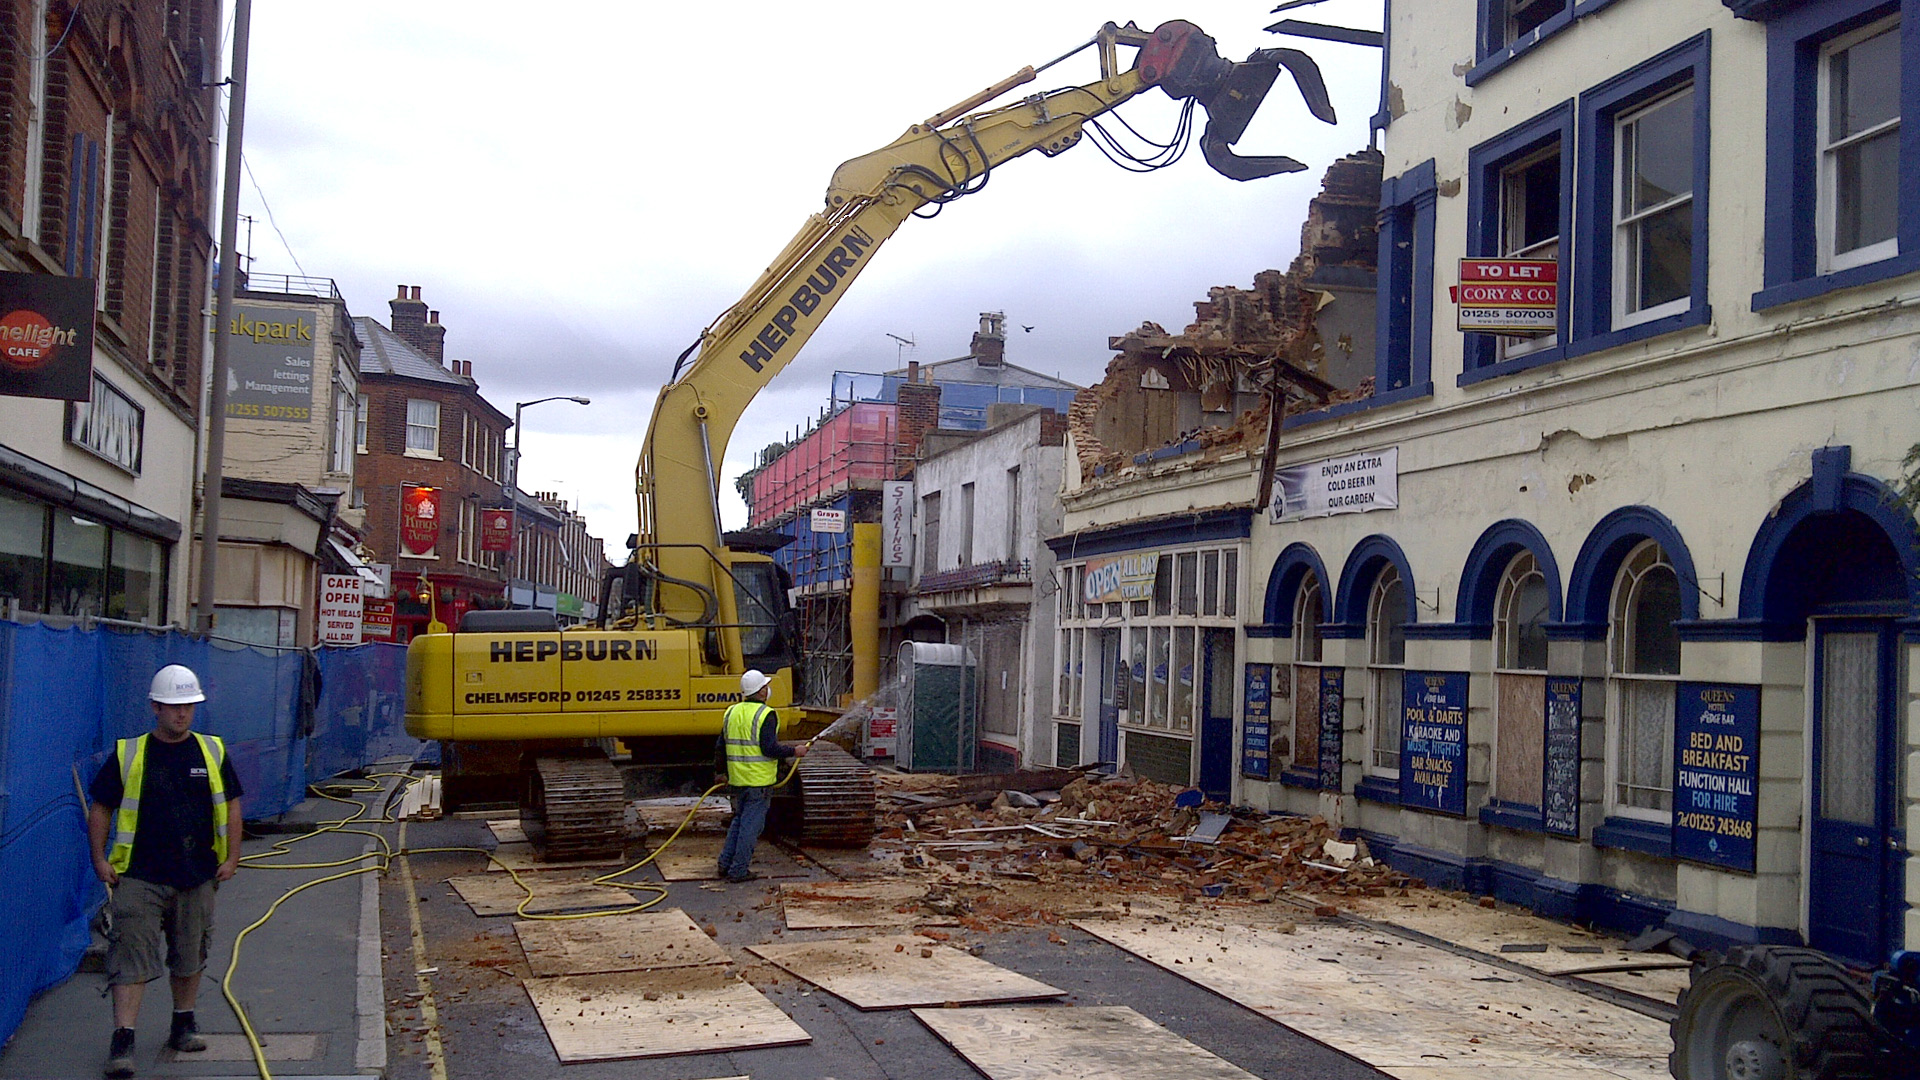 Queens Hotel, Dovercourt – fire damage clearance